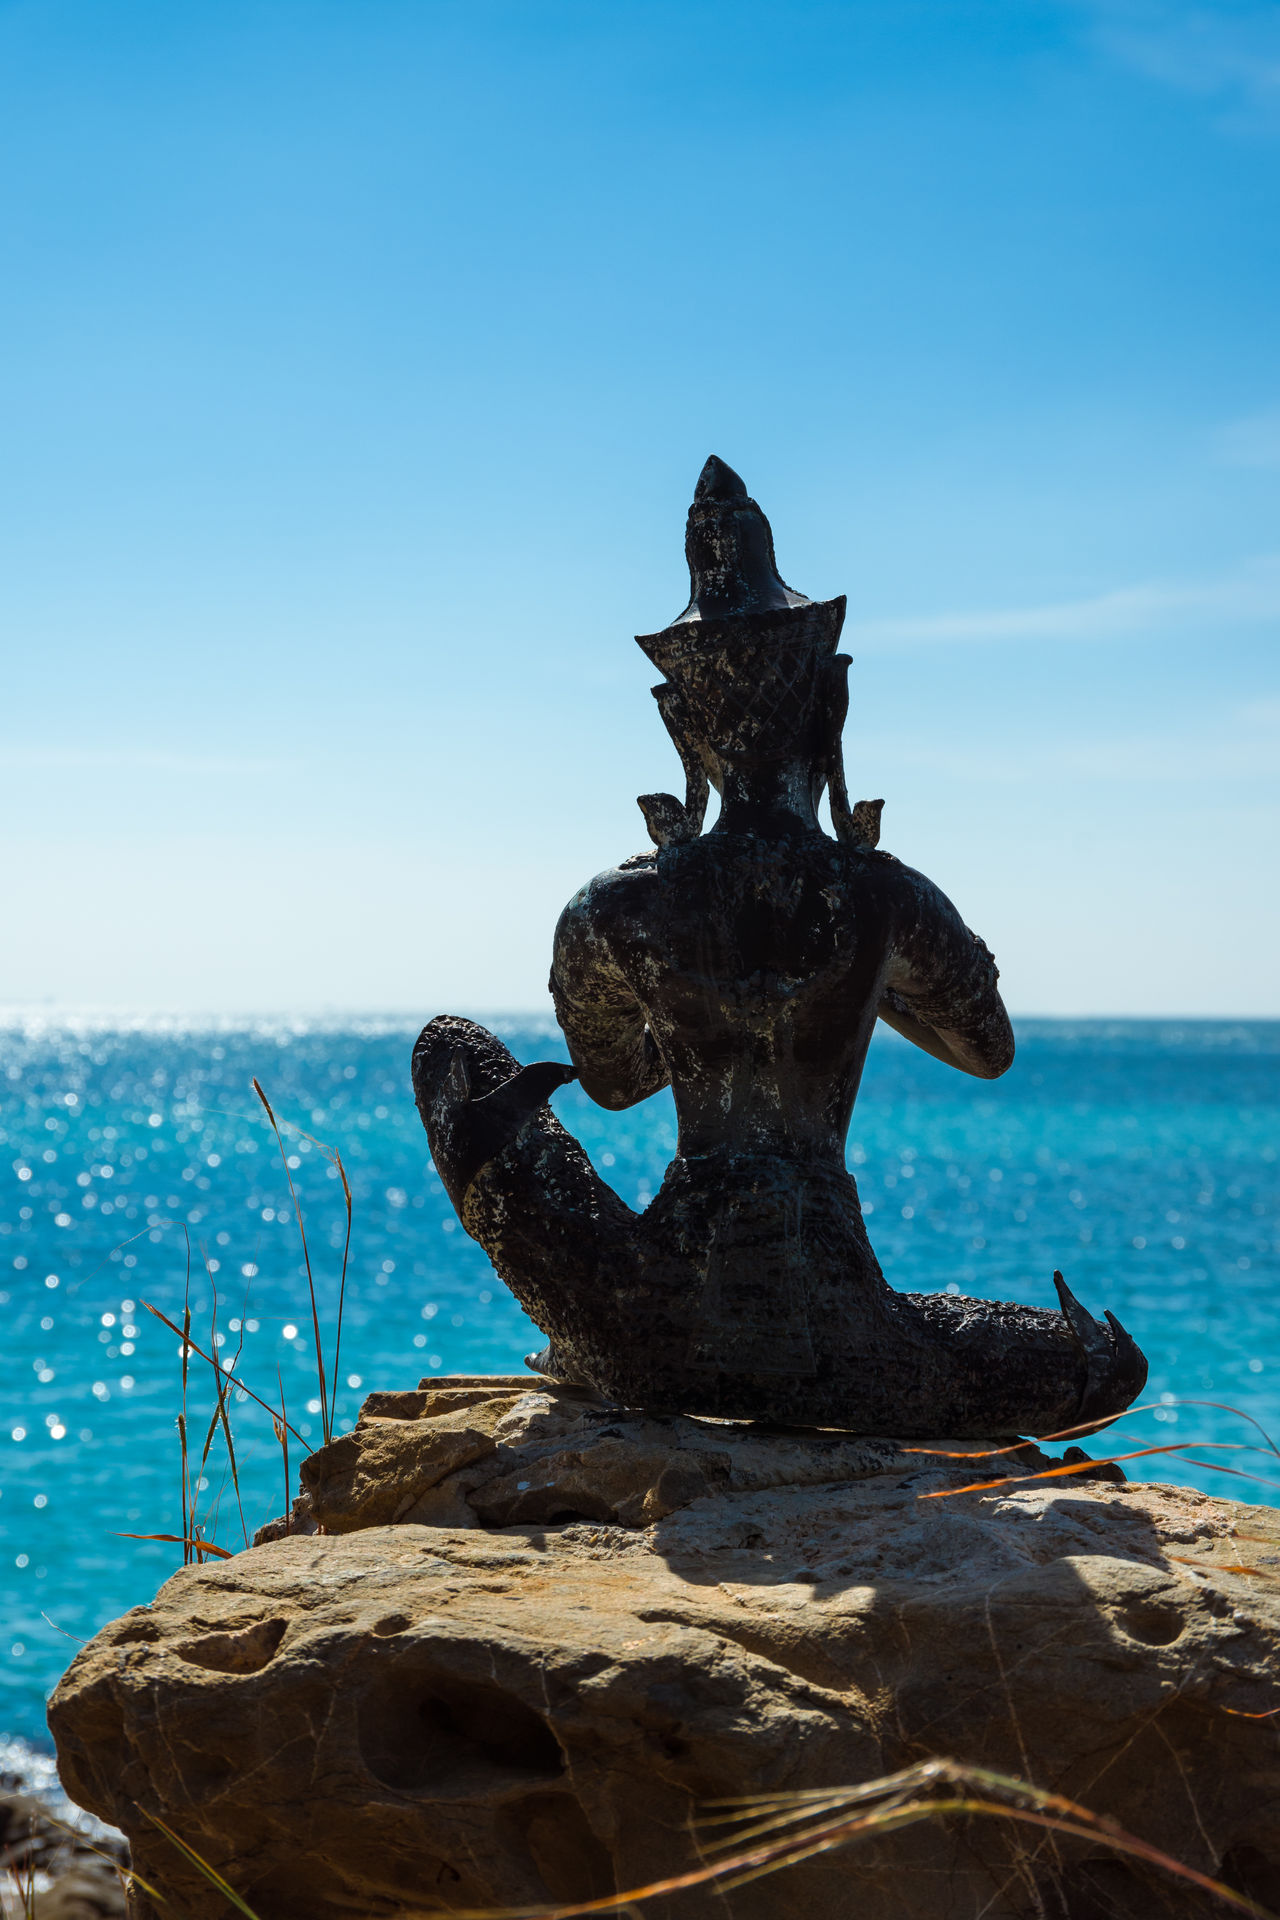 Seated Buddhist statue on a rock looking out to the ocean at Hat Nang Ram beach in Sattahip, Thailand Asian  Beach Buddha Buddhism Buddhist Day Horizon Over Water Meditation Outdoors Peace Peaceful Pray Rock Sculpture Sea Seated Sitting Sky Spirituality Statue Stone Thailand Tranquility Travel Water